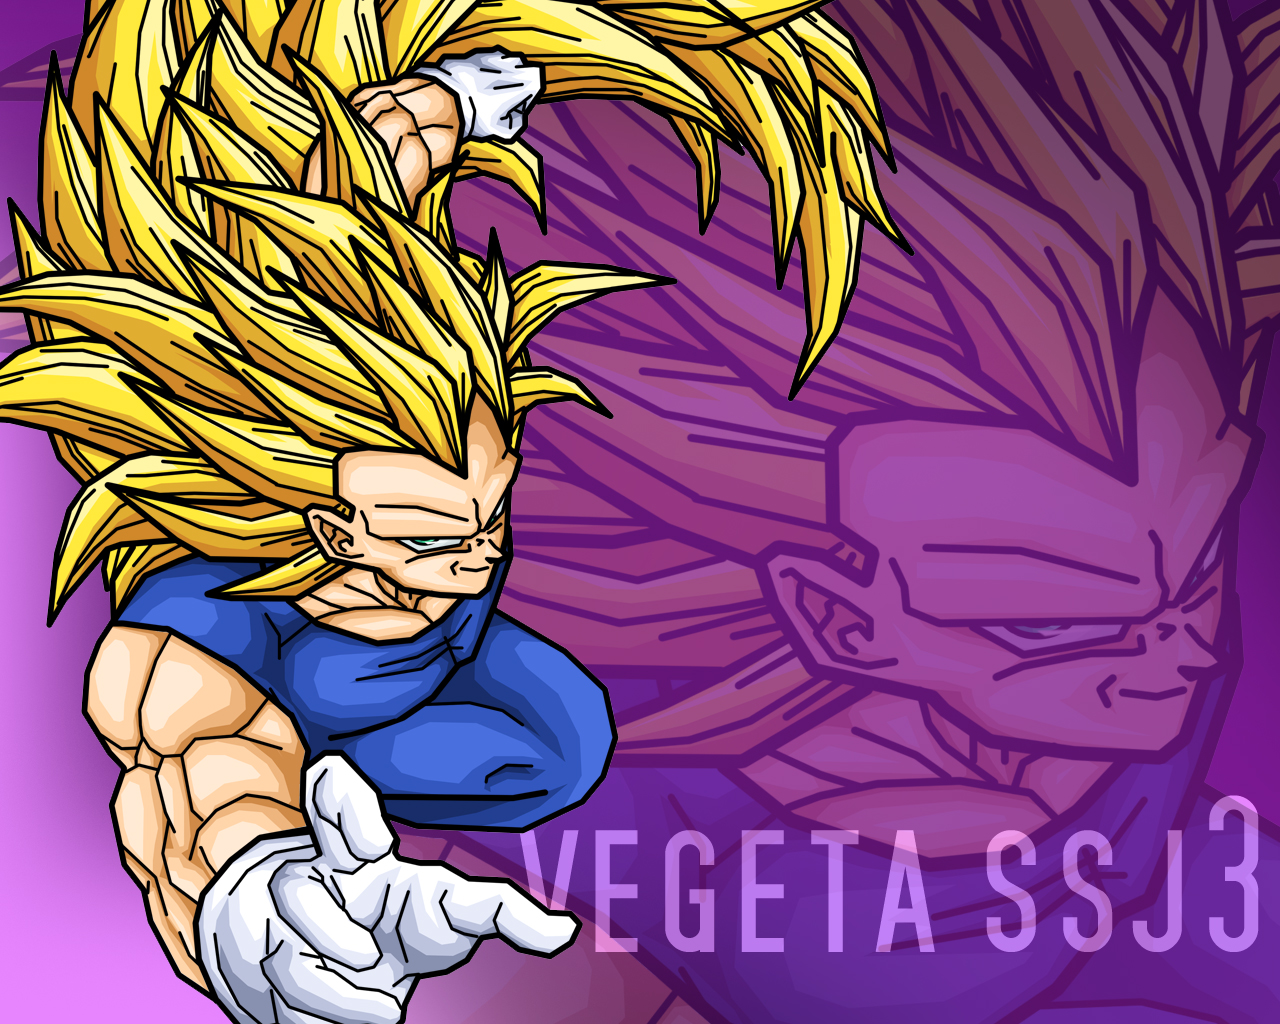 Vegeta super saiyan 3 by alessandelpho on deviantart - Goku vs vegeta super saiyan 5 ...